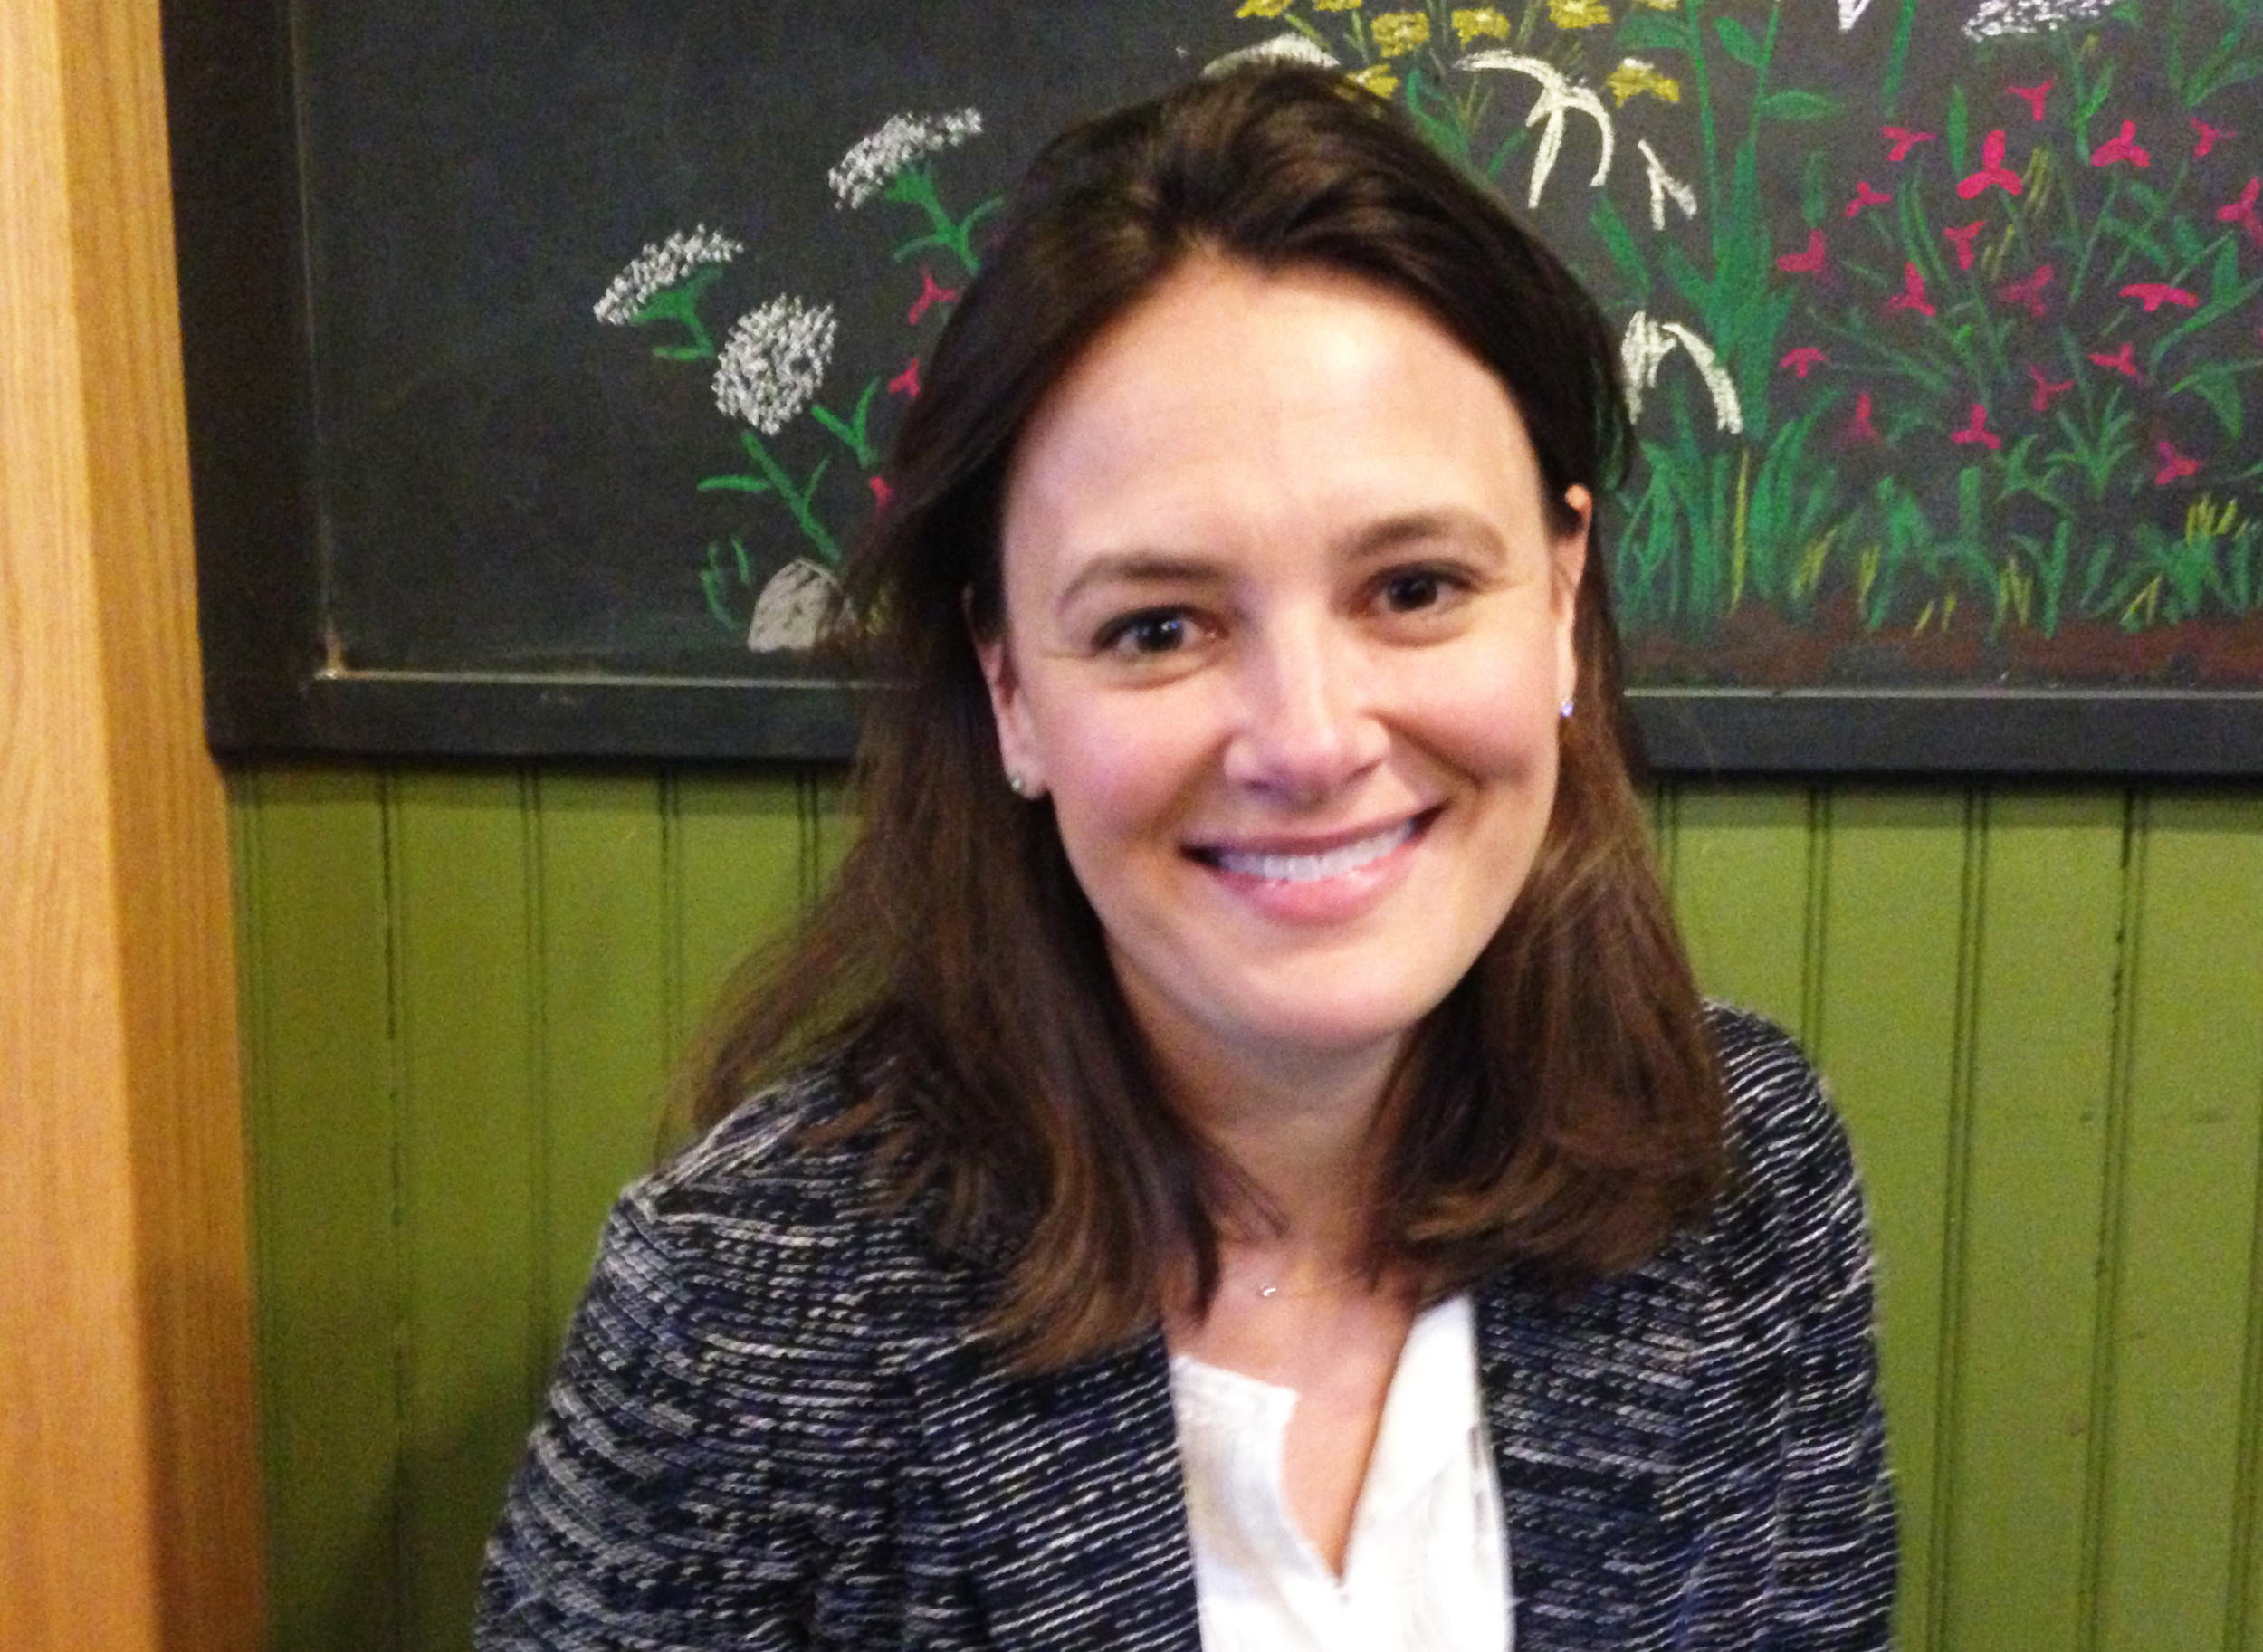 Rachel Flum, executive director of the Economic Policy Institute, interviewed by ConvergenceRI at Olga's Cup and Saucer, talking about the state budget.